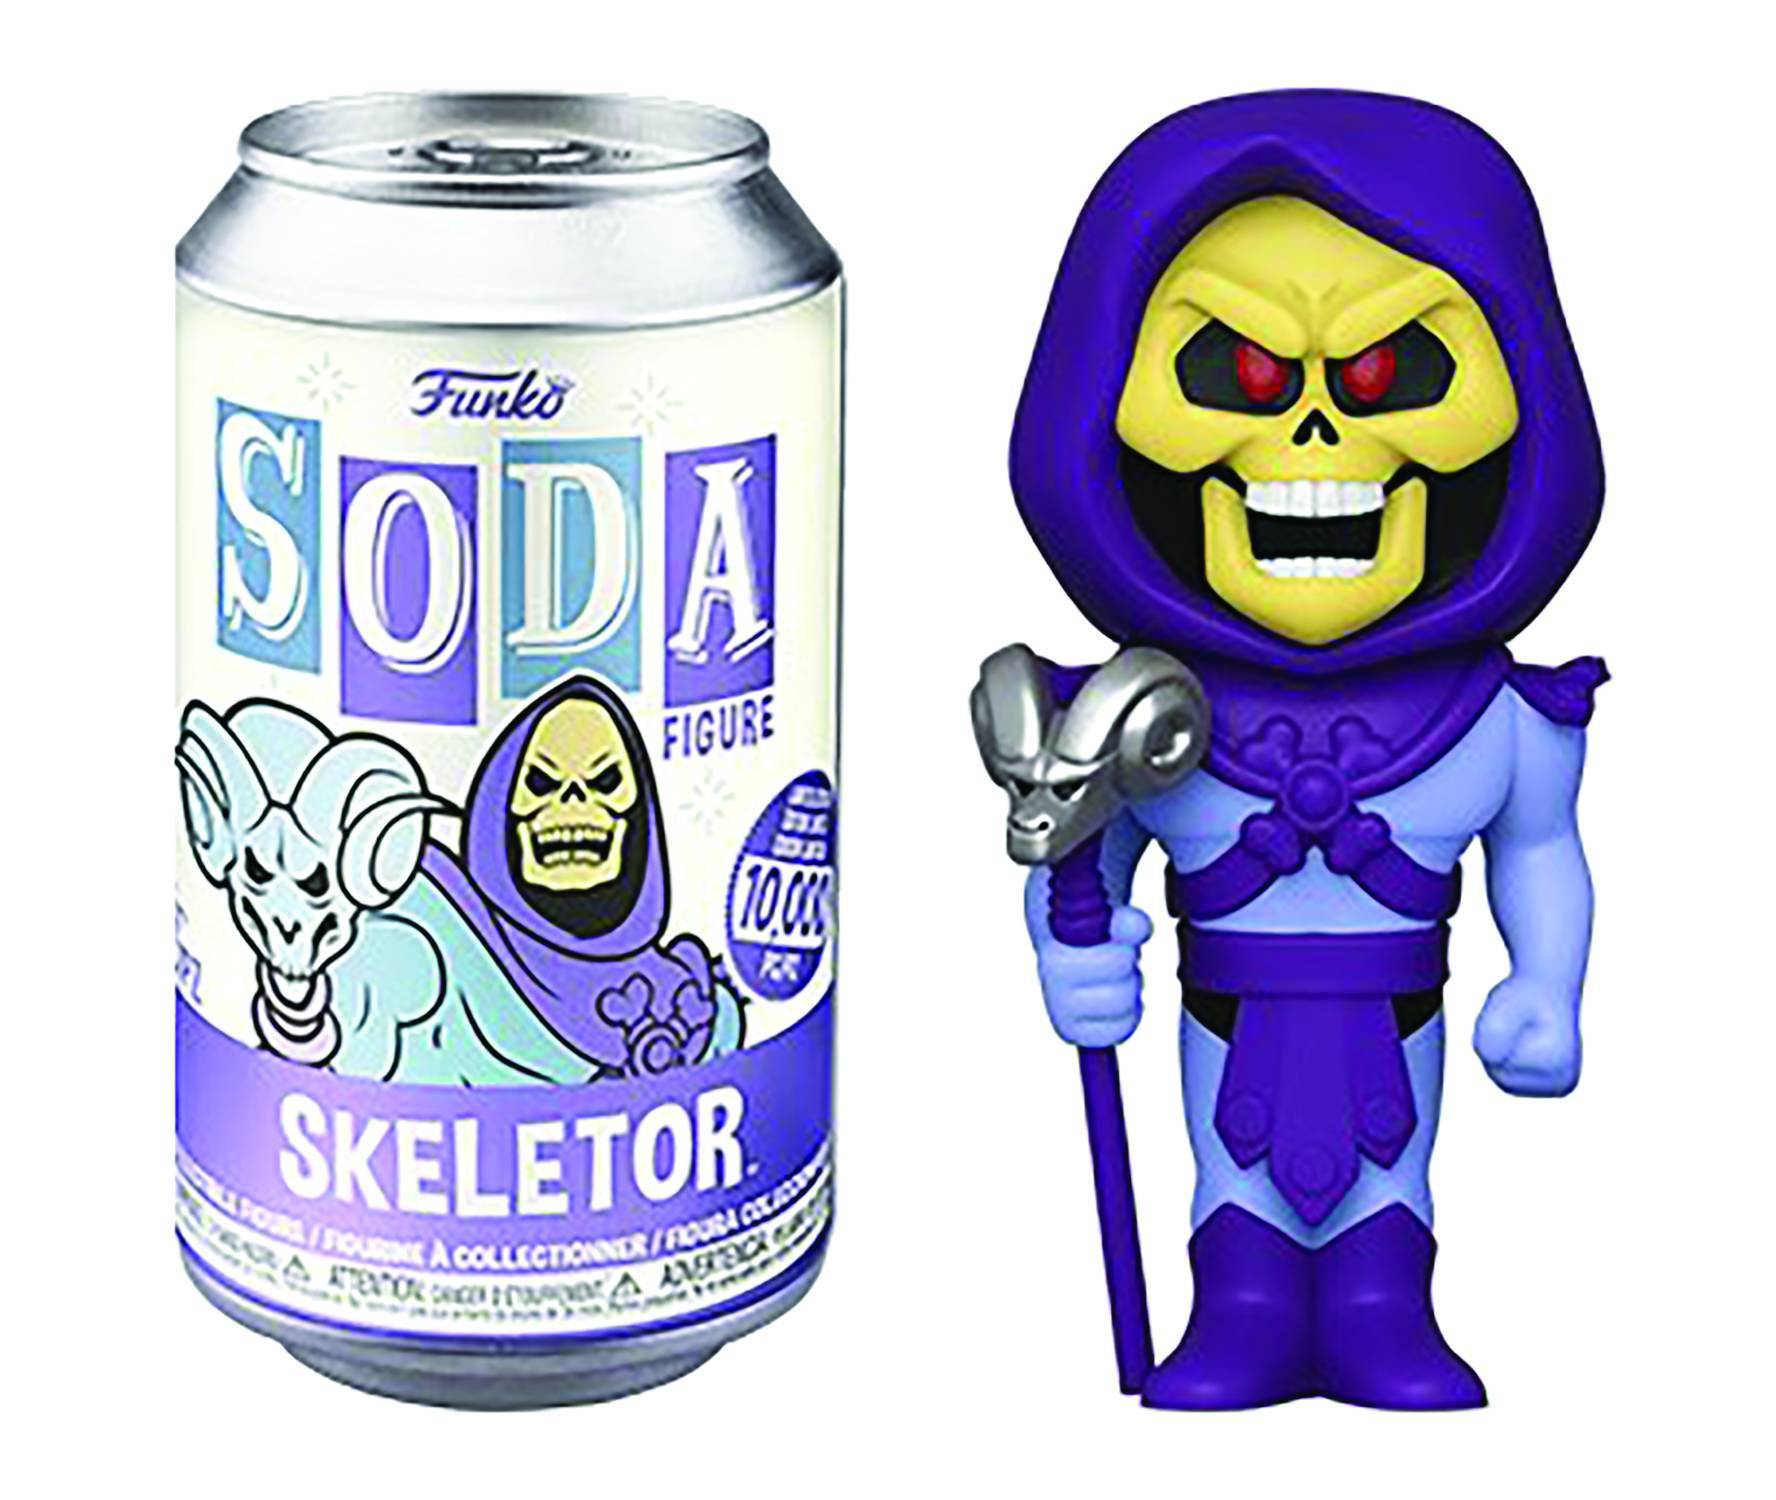 VINYL SODA MOTU SKELETOR VINYL FIG W/CHASE